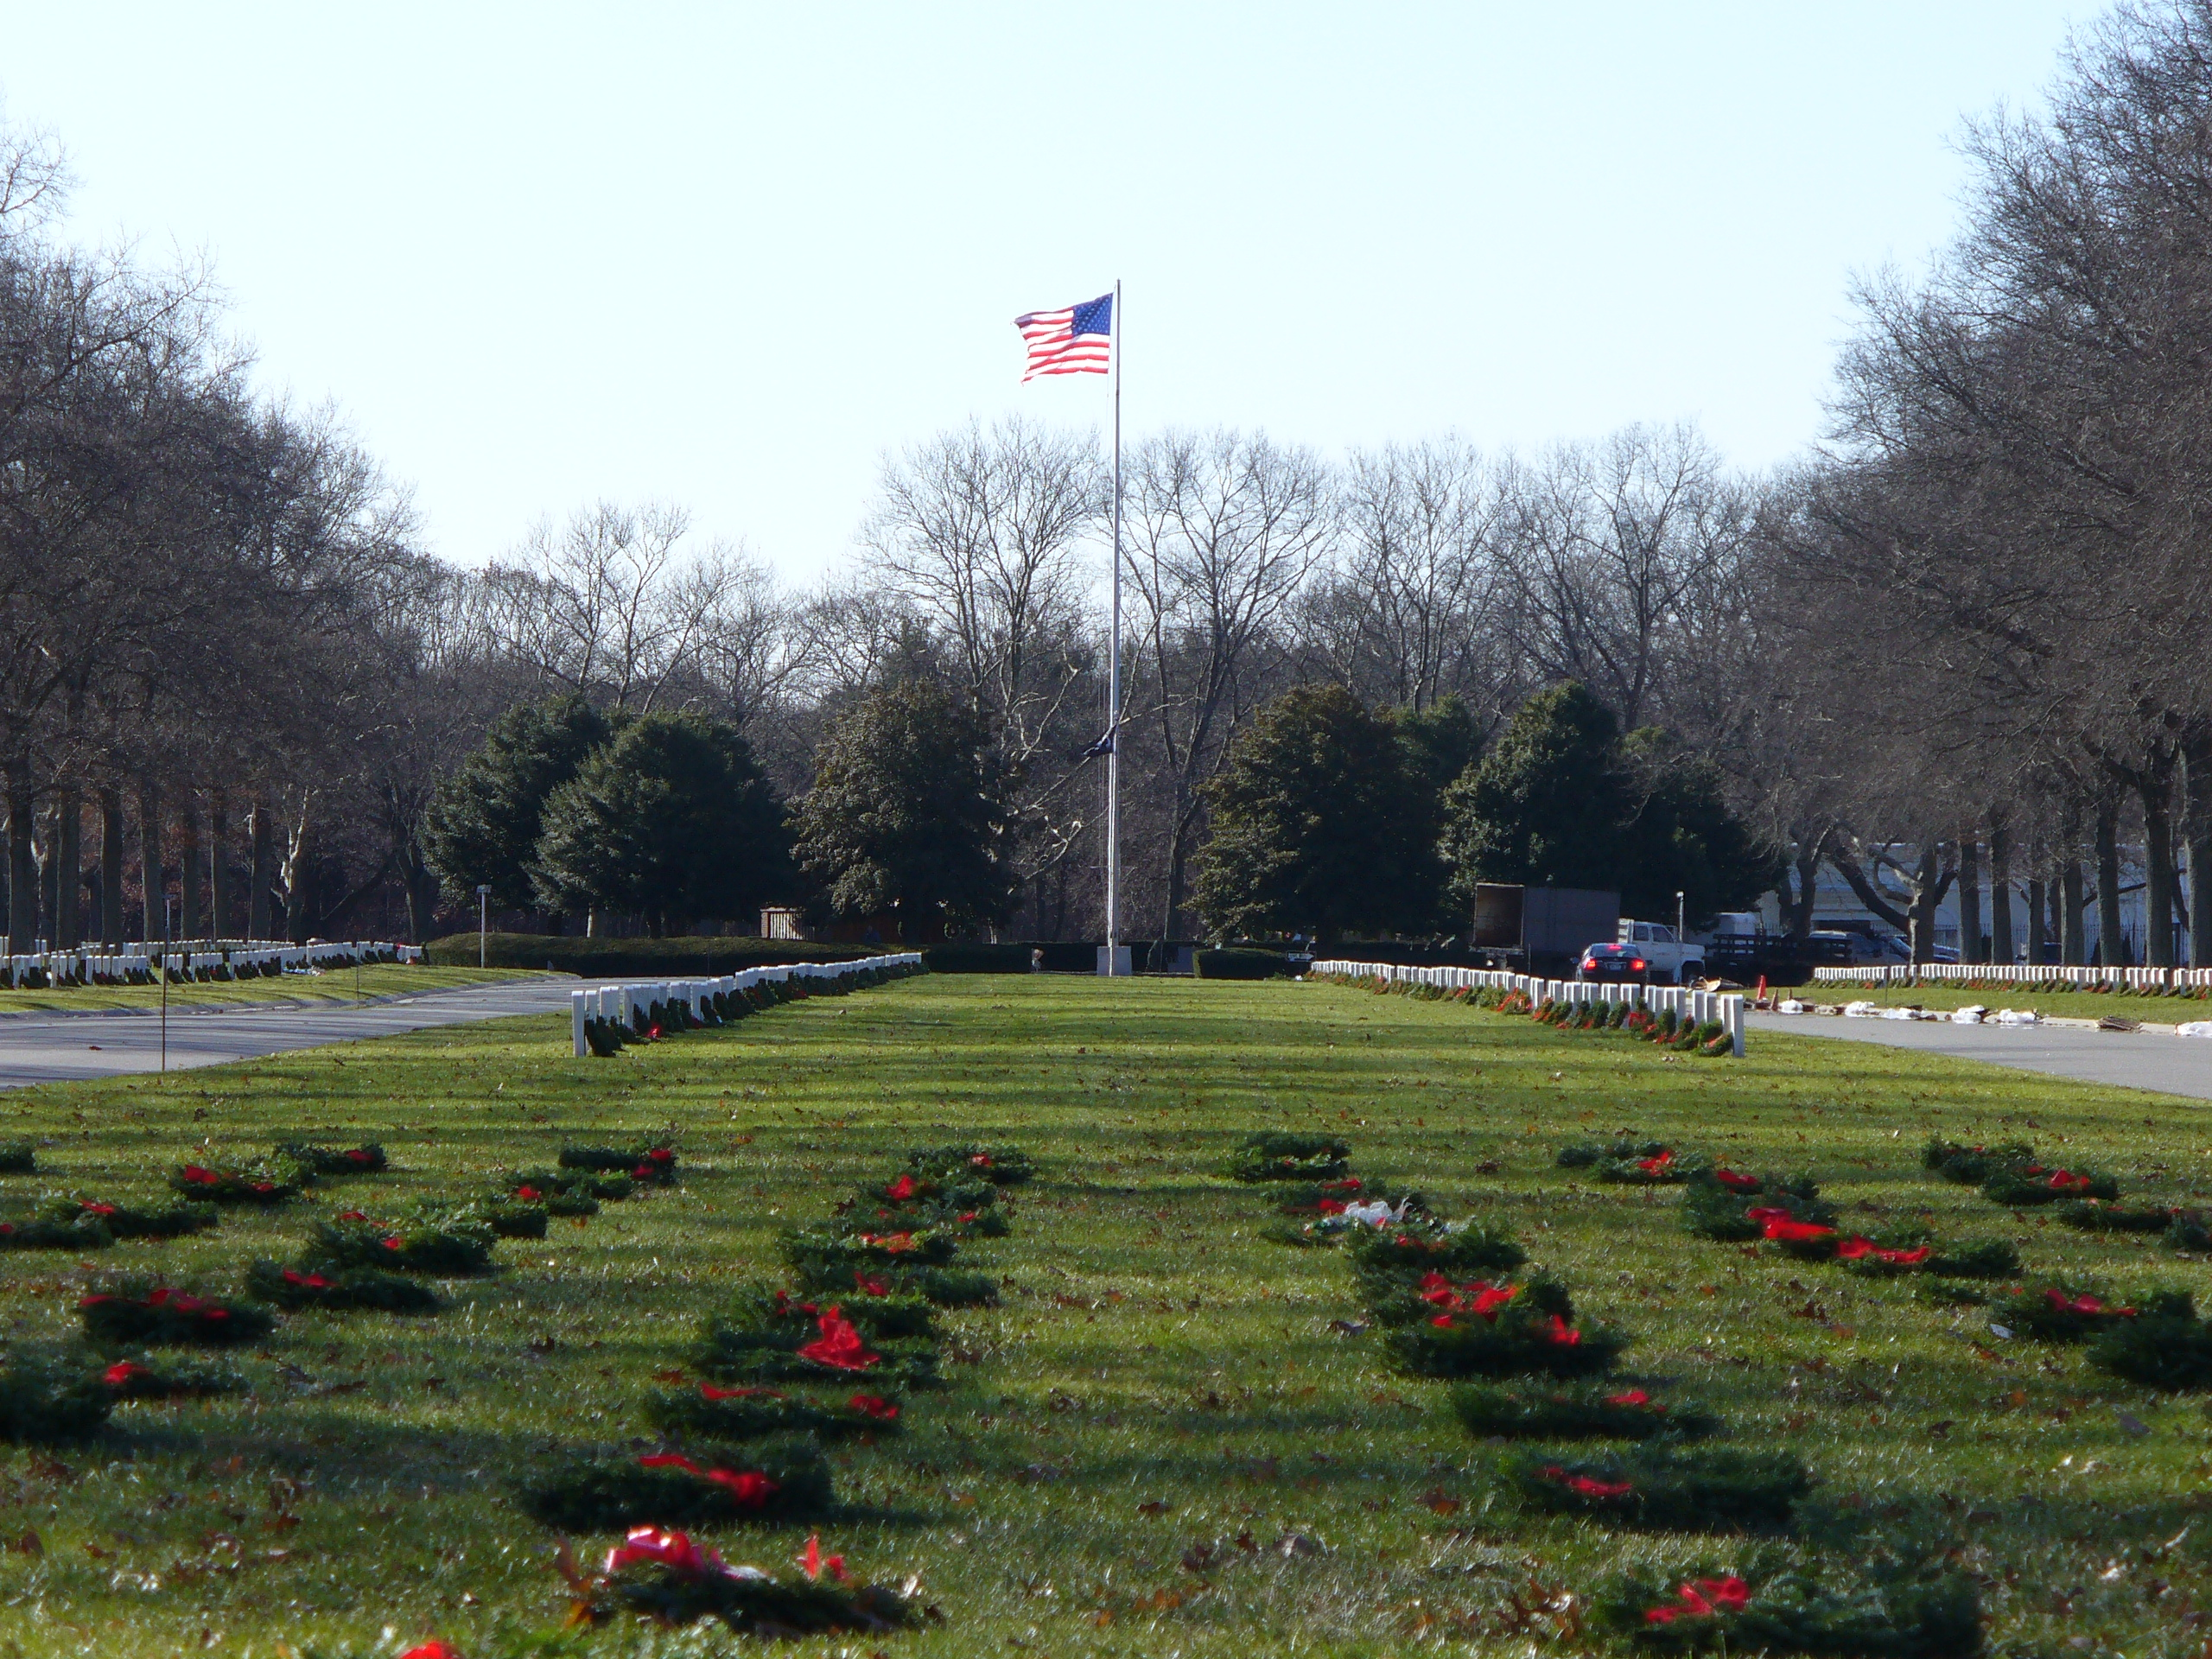 National Cemetery, Farmingdale, NY,  Wreaths laid on Veterans Graves